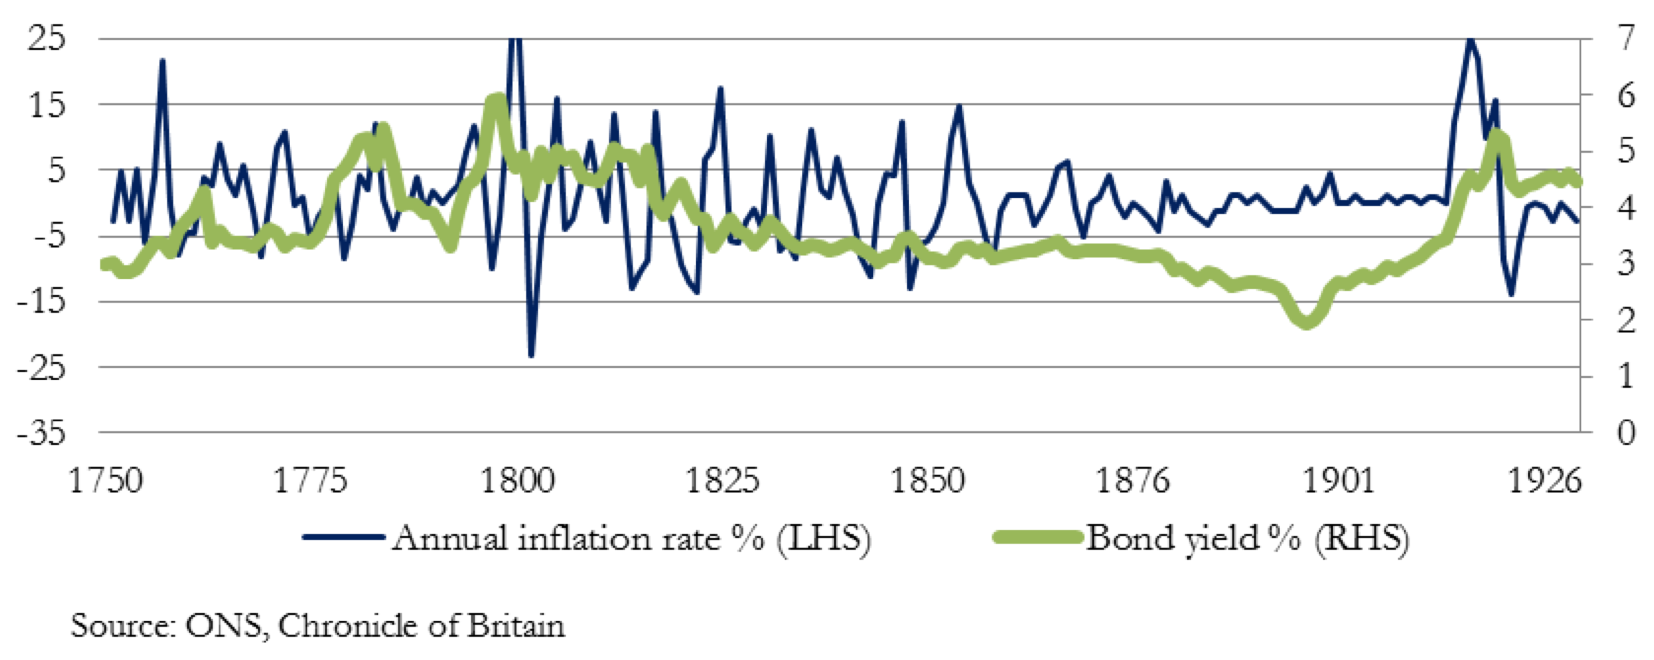 Annual inflation rate %